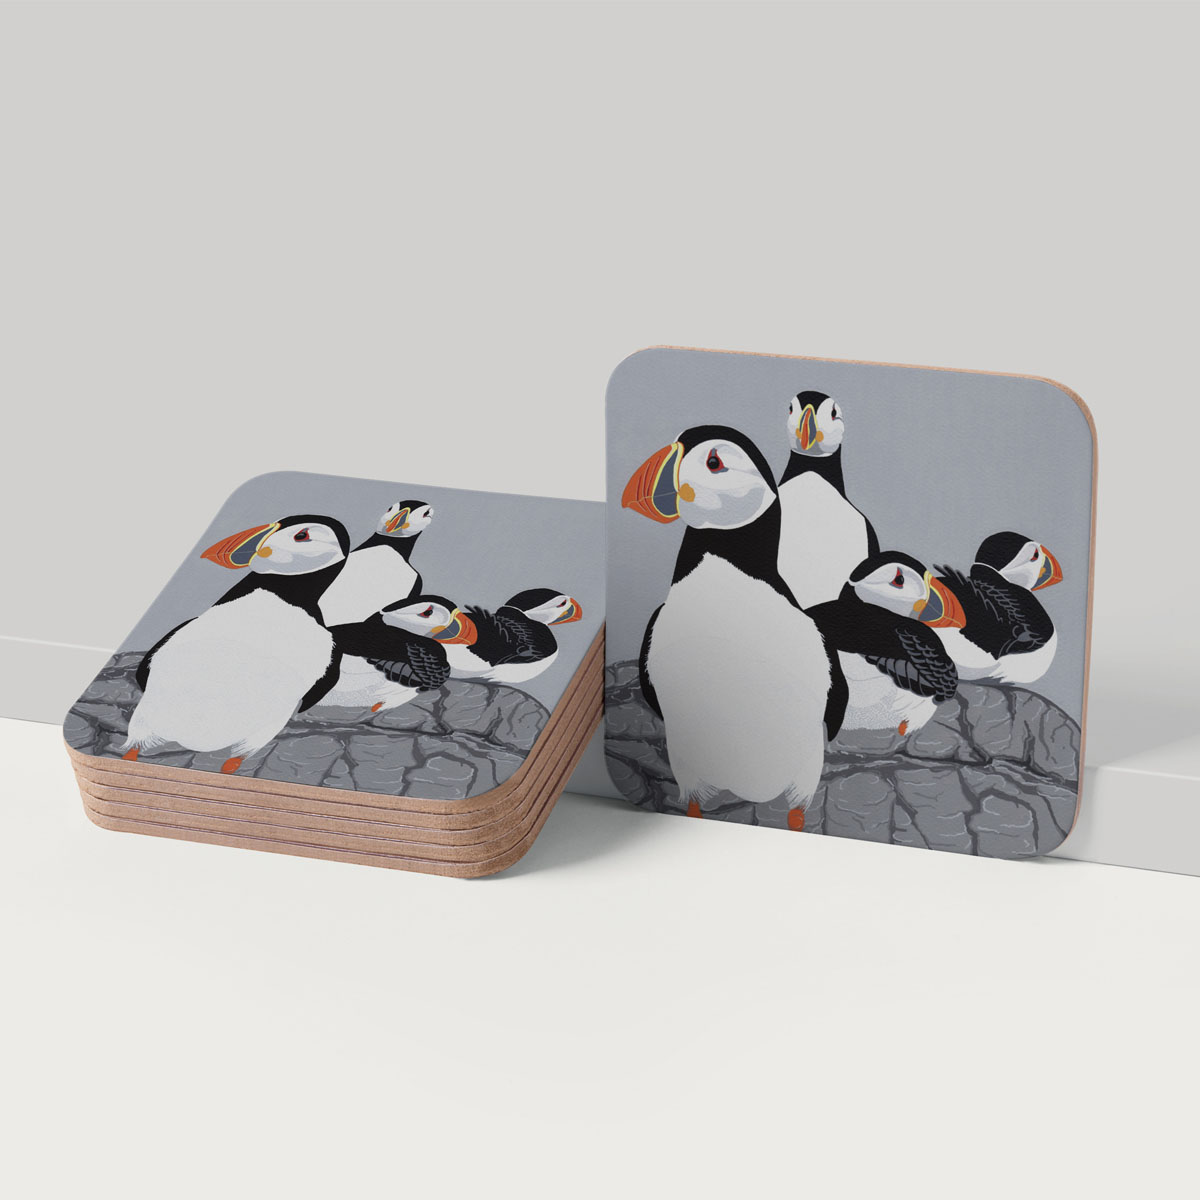 Puffinry Puffins Coaster Placemat Homewares